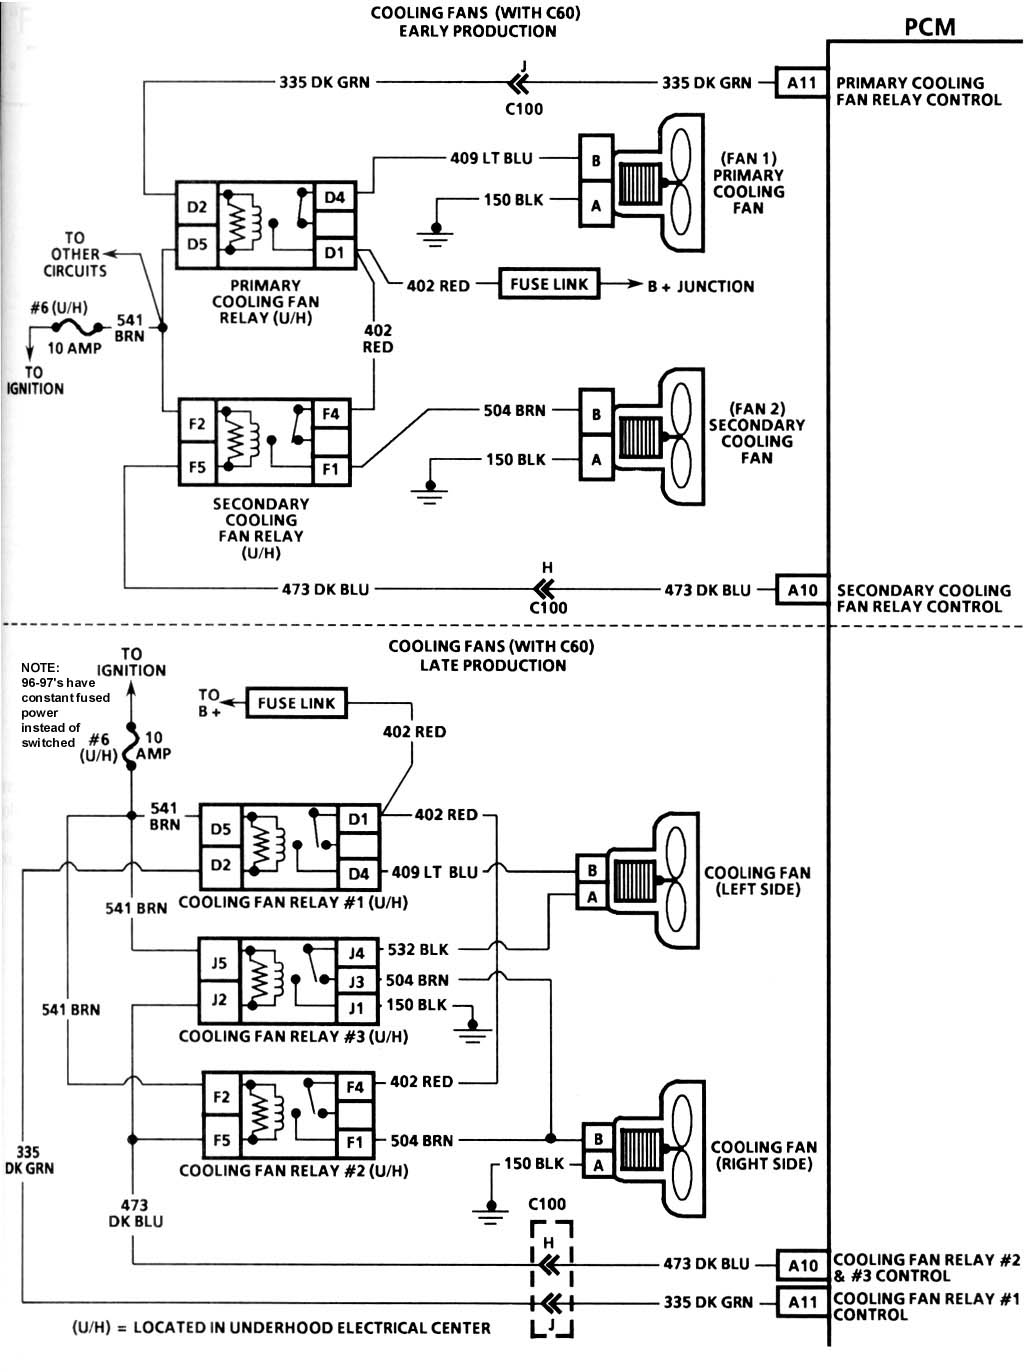 Cooling Fan Wiring Diagram 1995 Corvette 1999 Off That C4 Grumpys Performance Garage Rh Grumpysperformance Com Bulkhead 1993